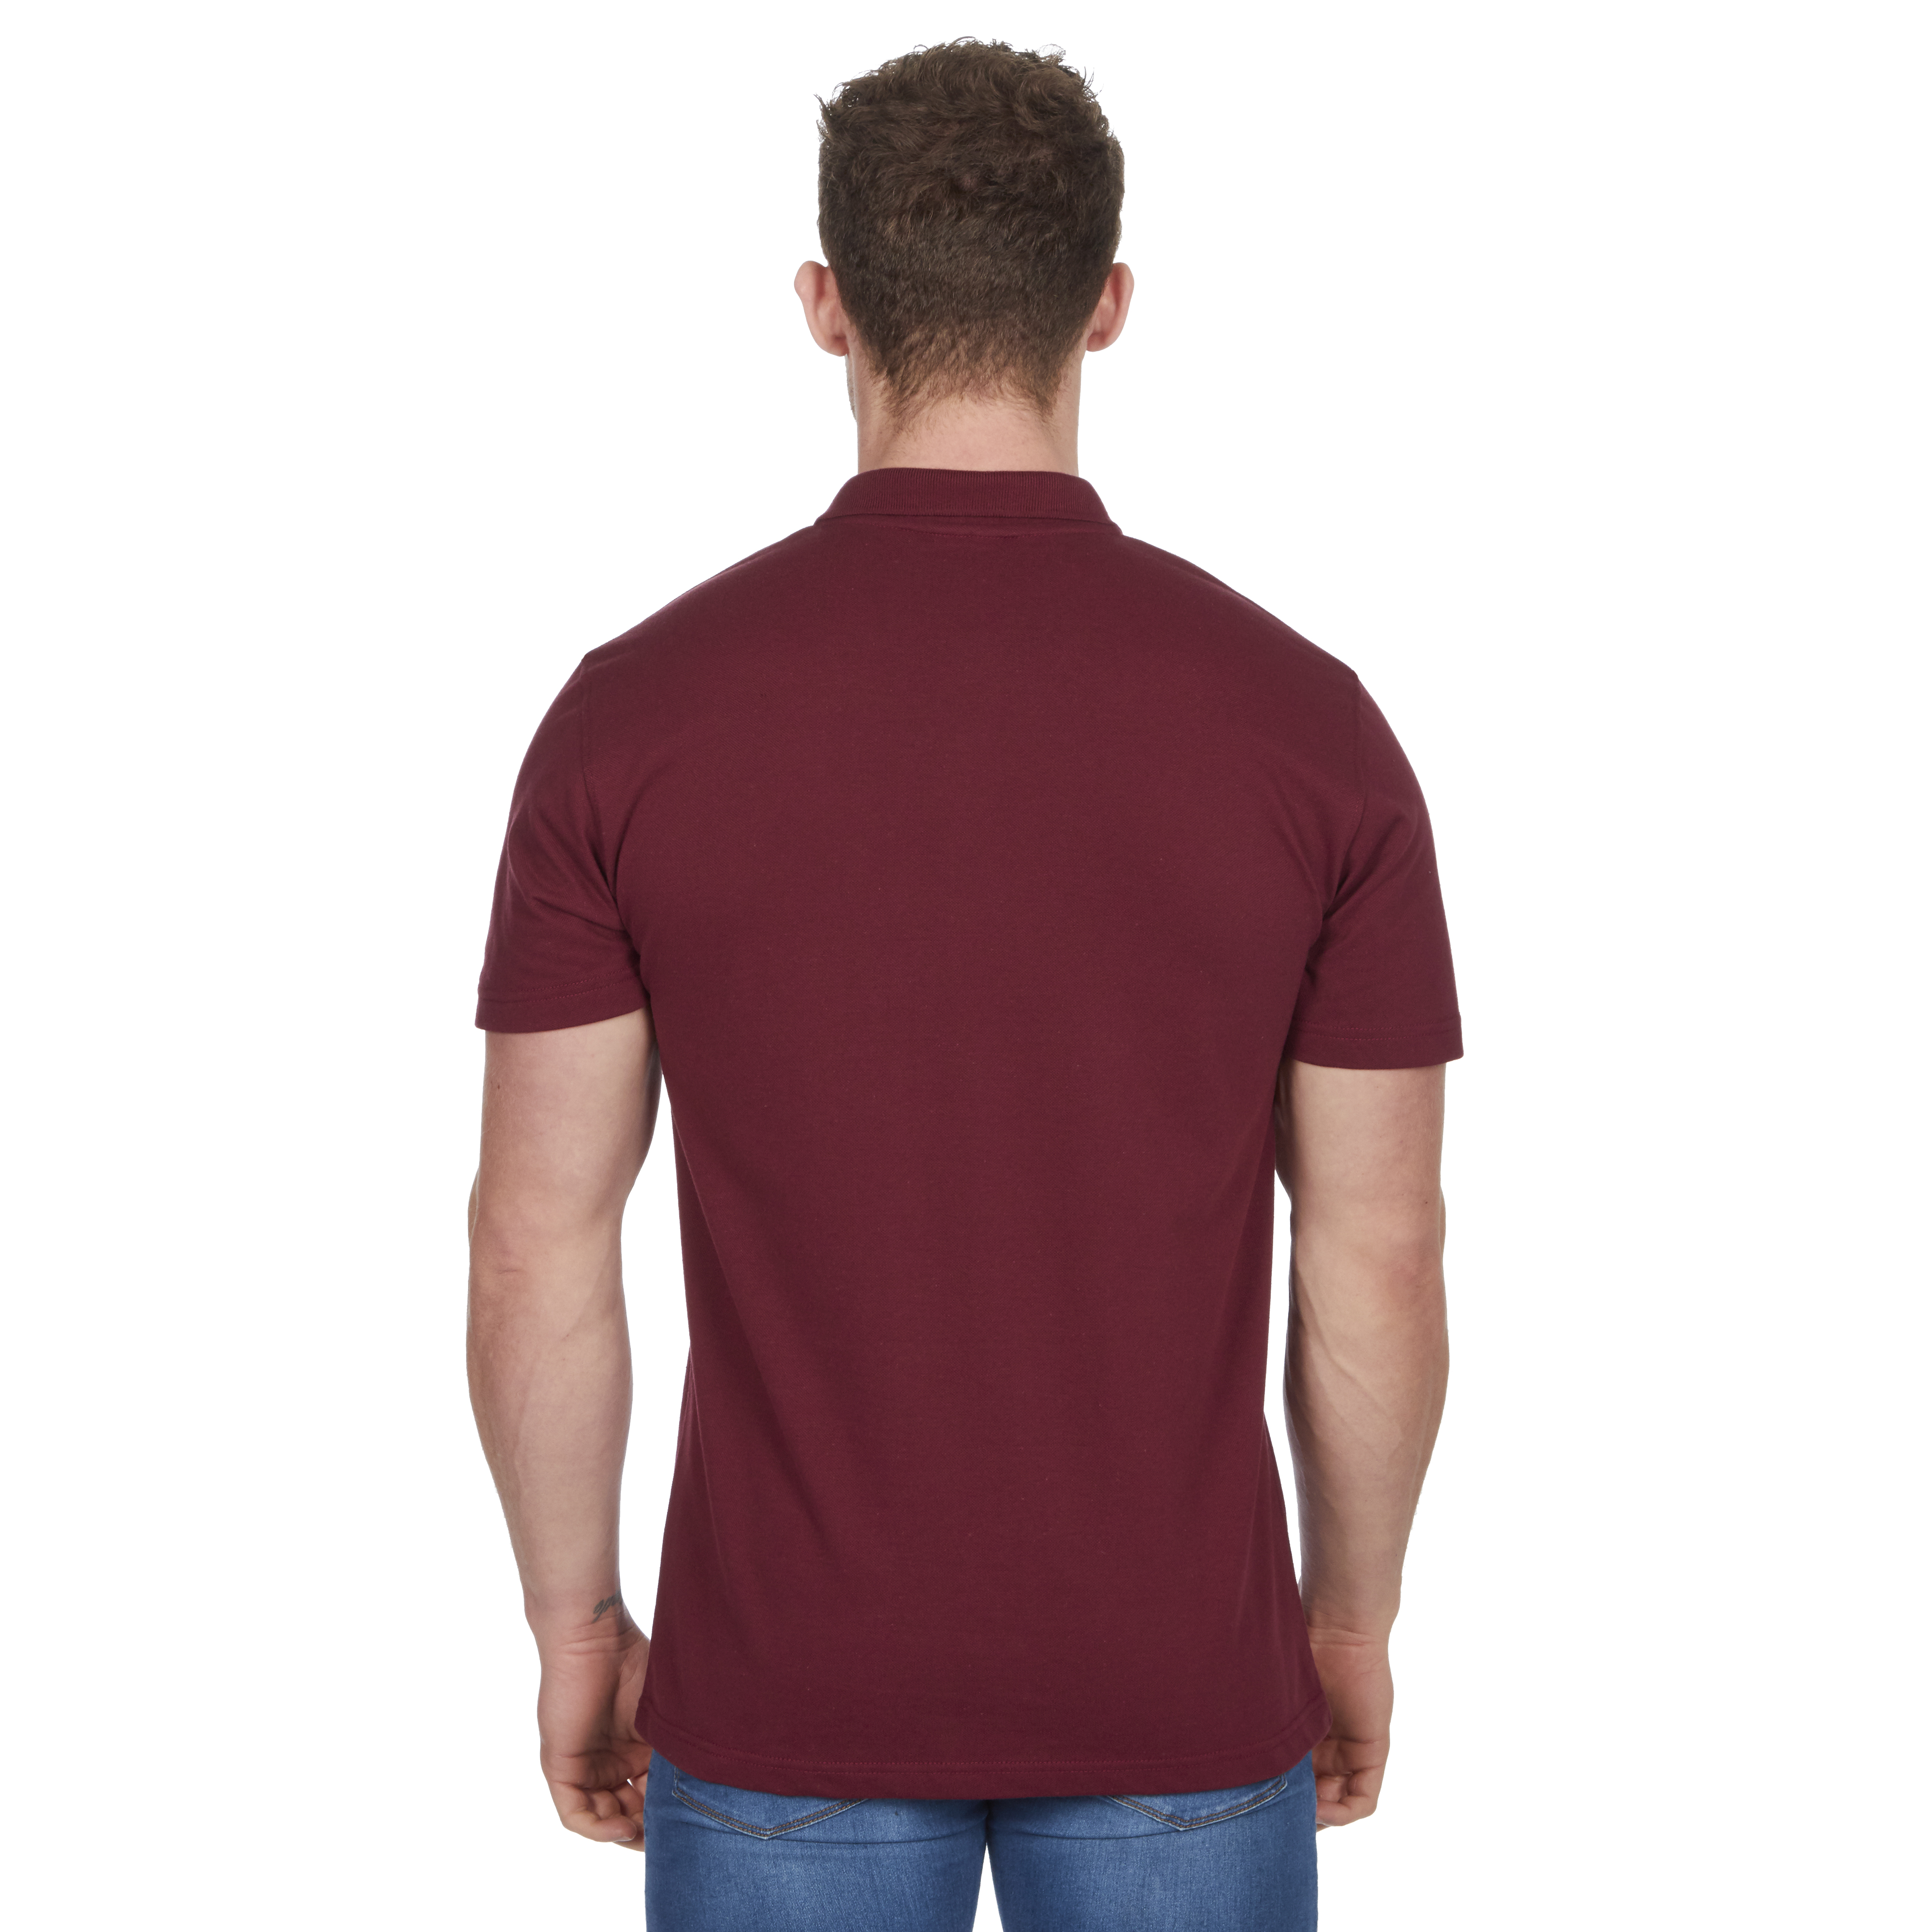 Mens-Classic-Polo-Top-Plus-Size-T-Shirt-Plain-Shirt-Big-And-Tall-Short-Sleeve thumbnail 40